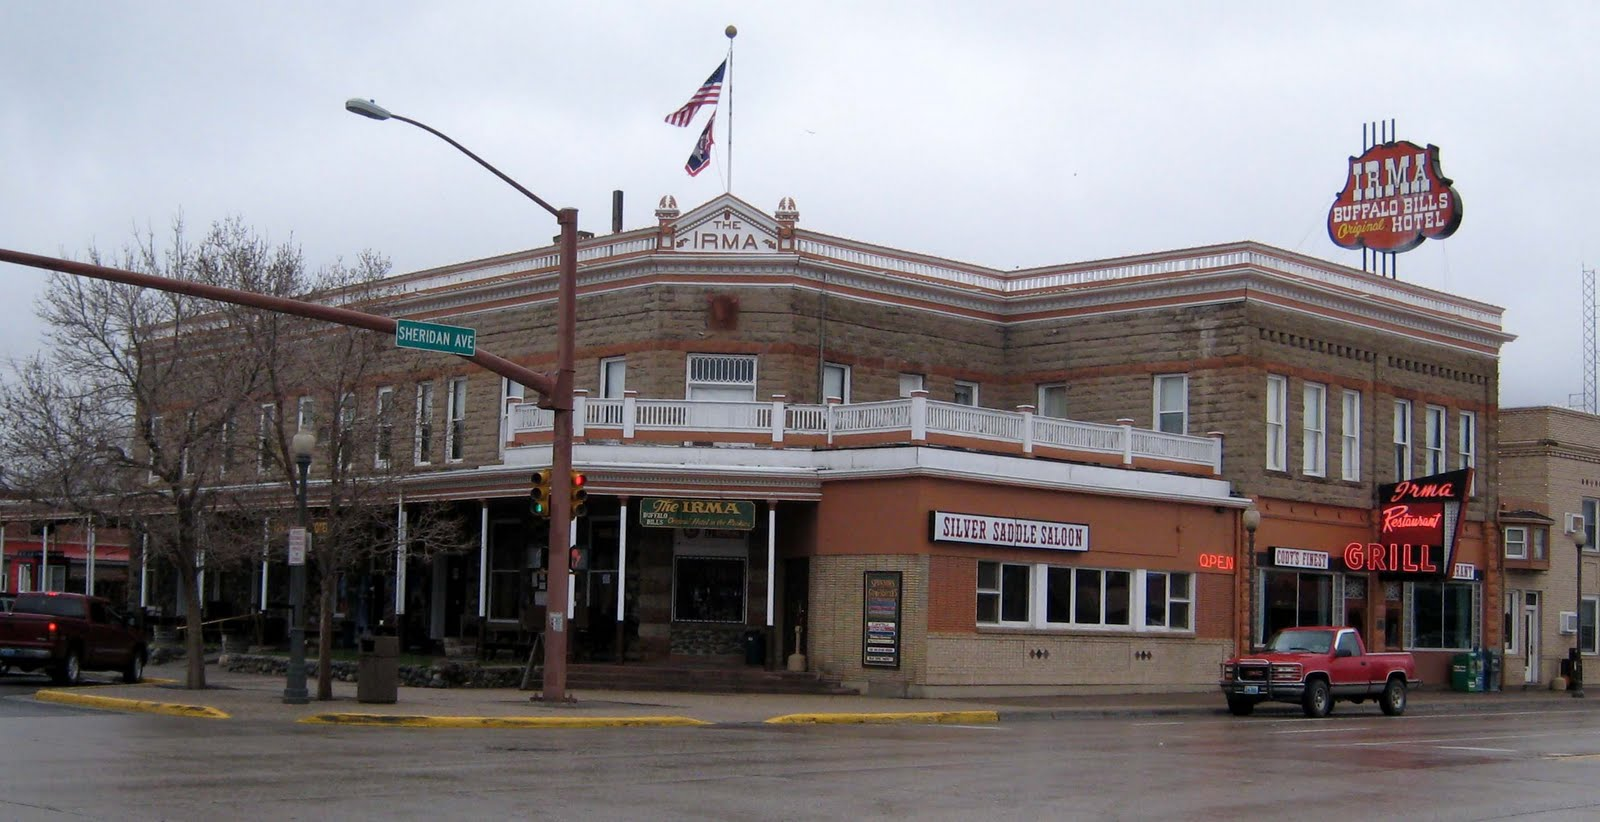 Step back in time- into the old west of today, at the Irma Hotel, - a place that Buffalo Bill Cody called